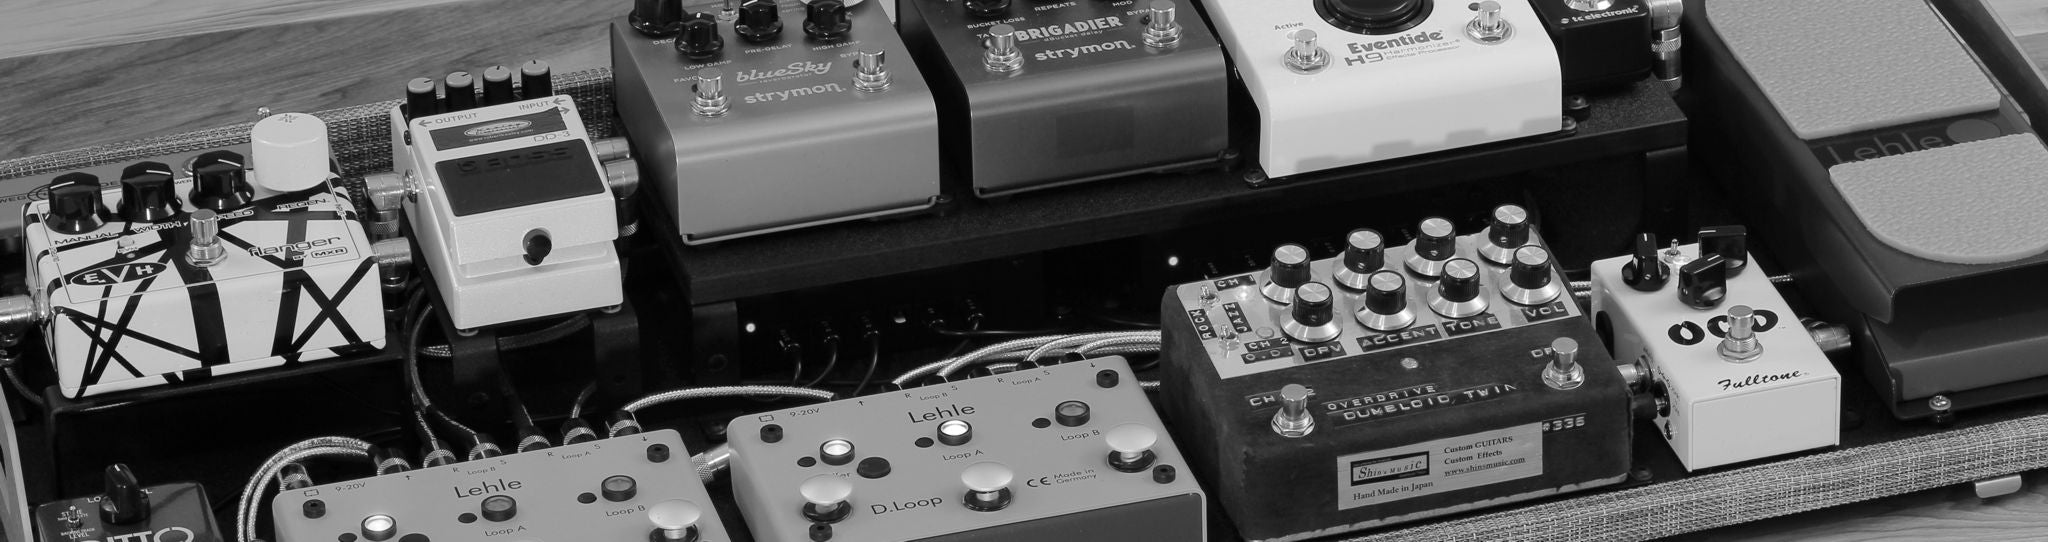 Custom pedalboard recap: Scaling down board size